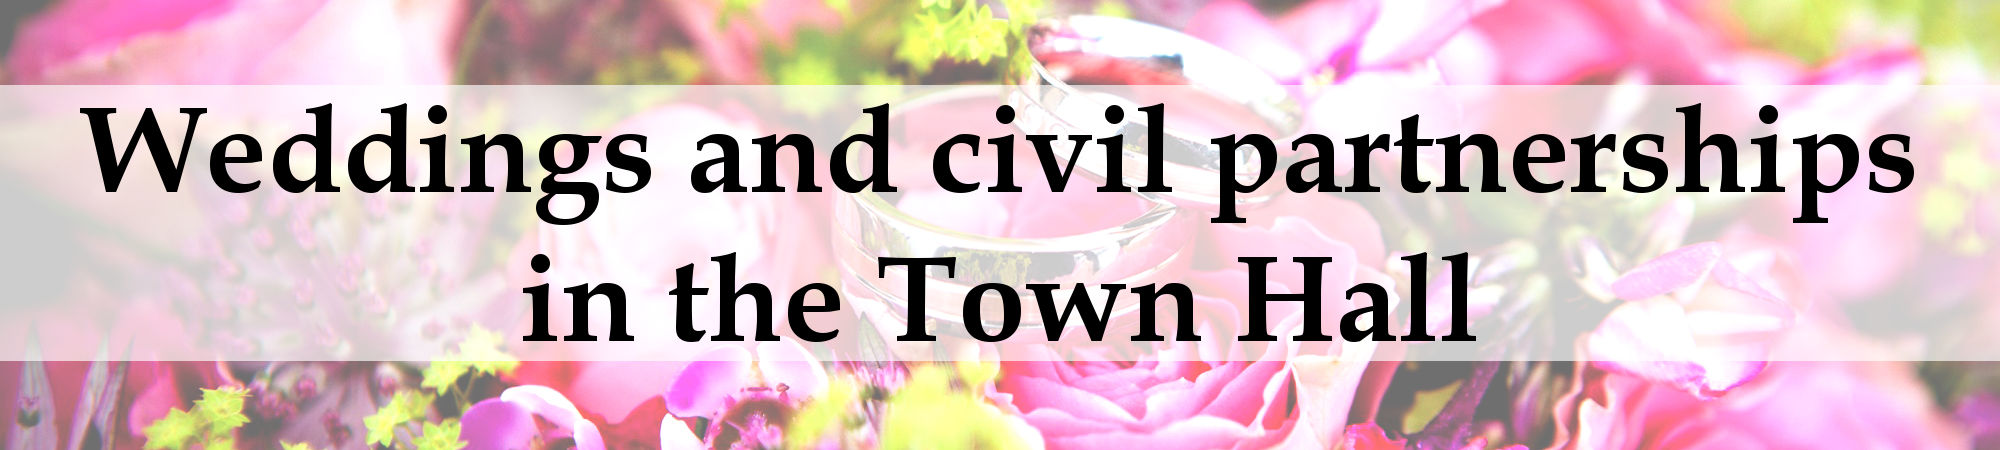 Weddings and civil partnerships in the Town Hall